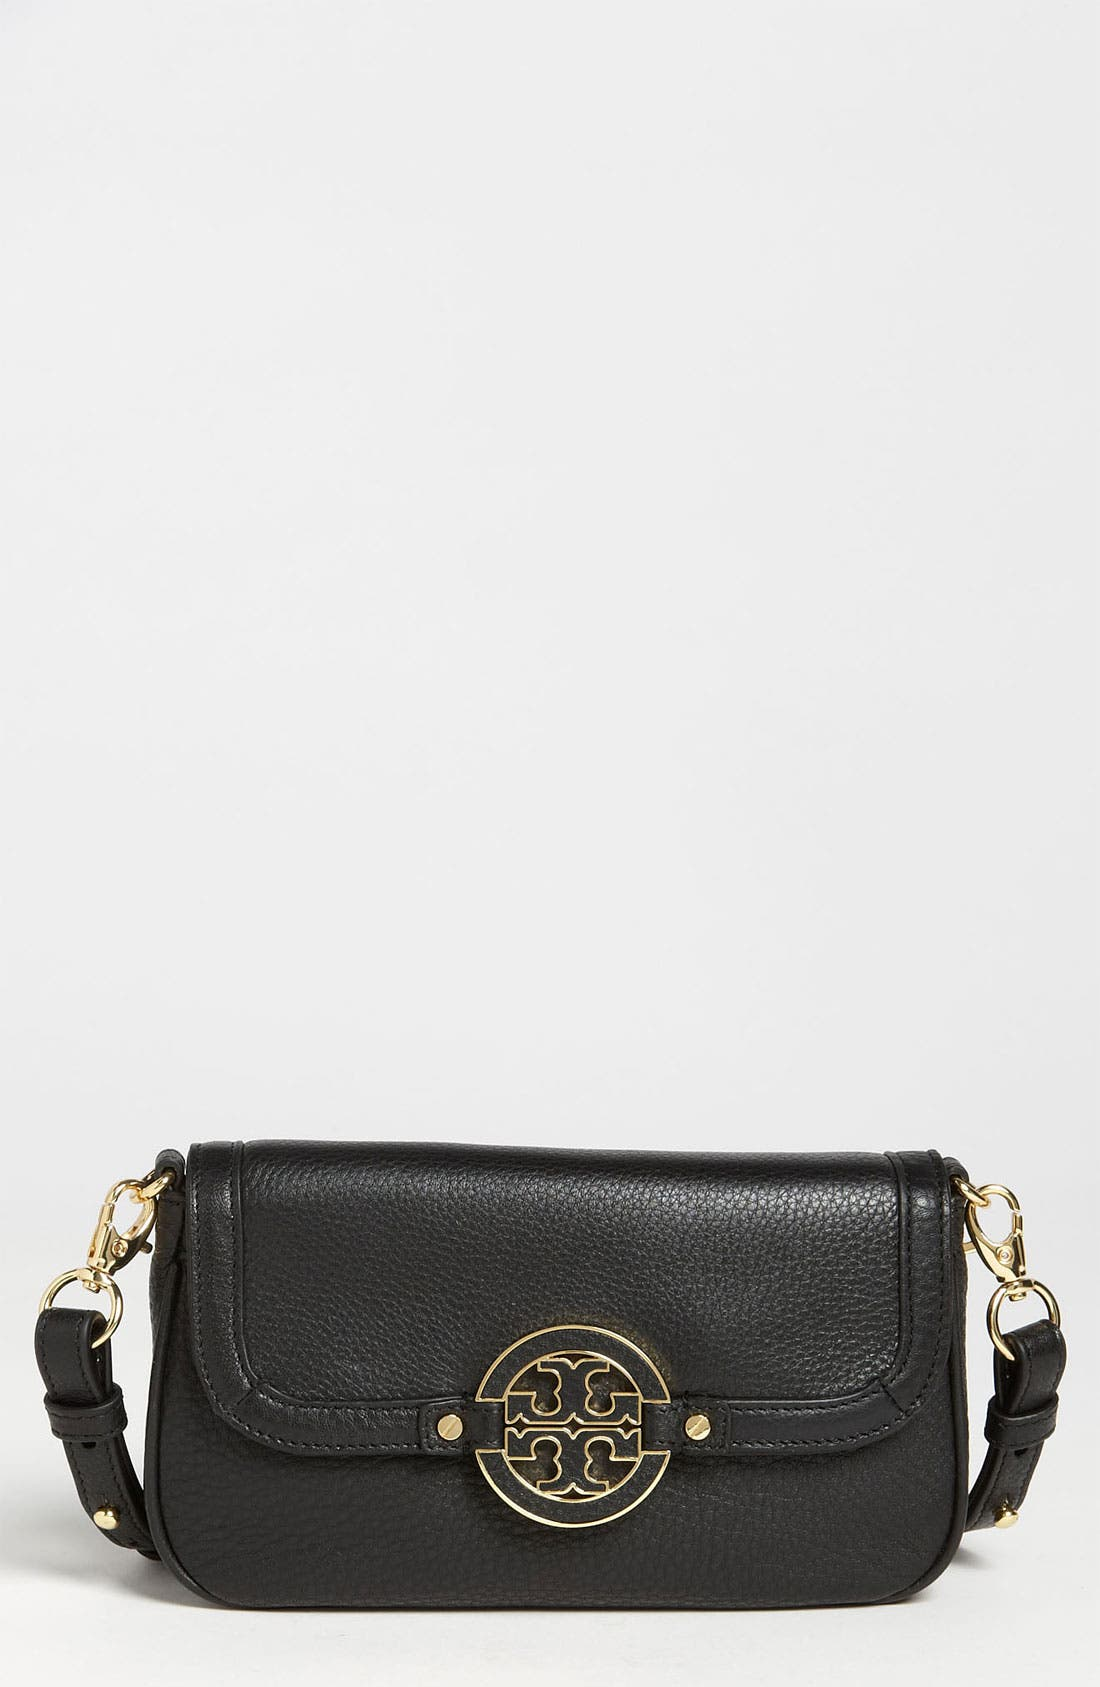 Alternate Image 1 Selected - Tory Burch 'Amanda - Mini' Crossbody Bag